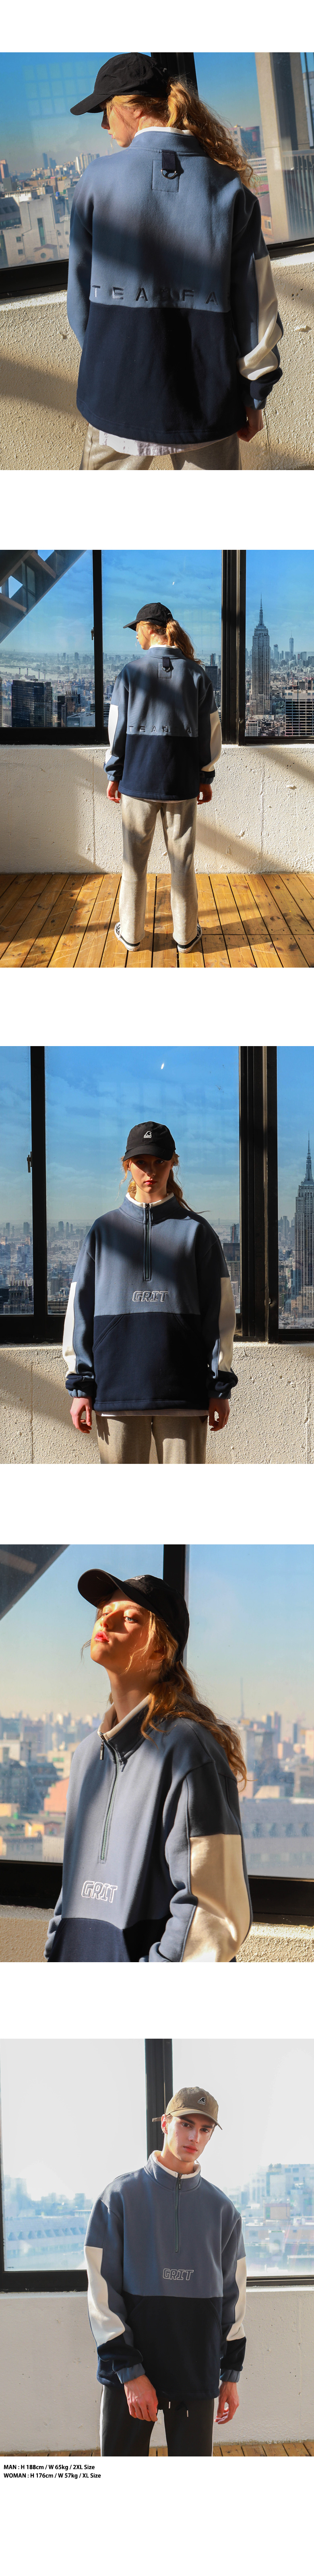 20190118_ps_grit_sweatshirt_model_sm_04.jpg